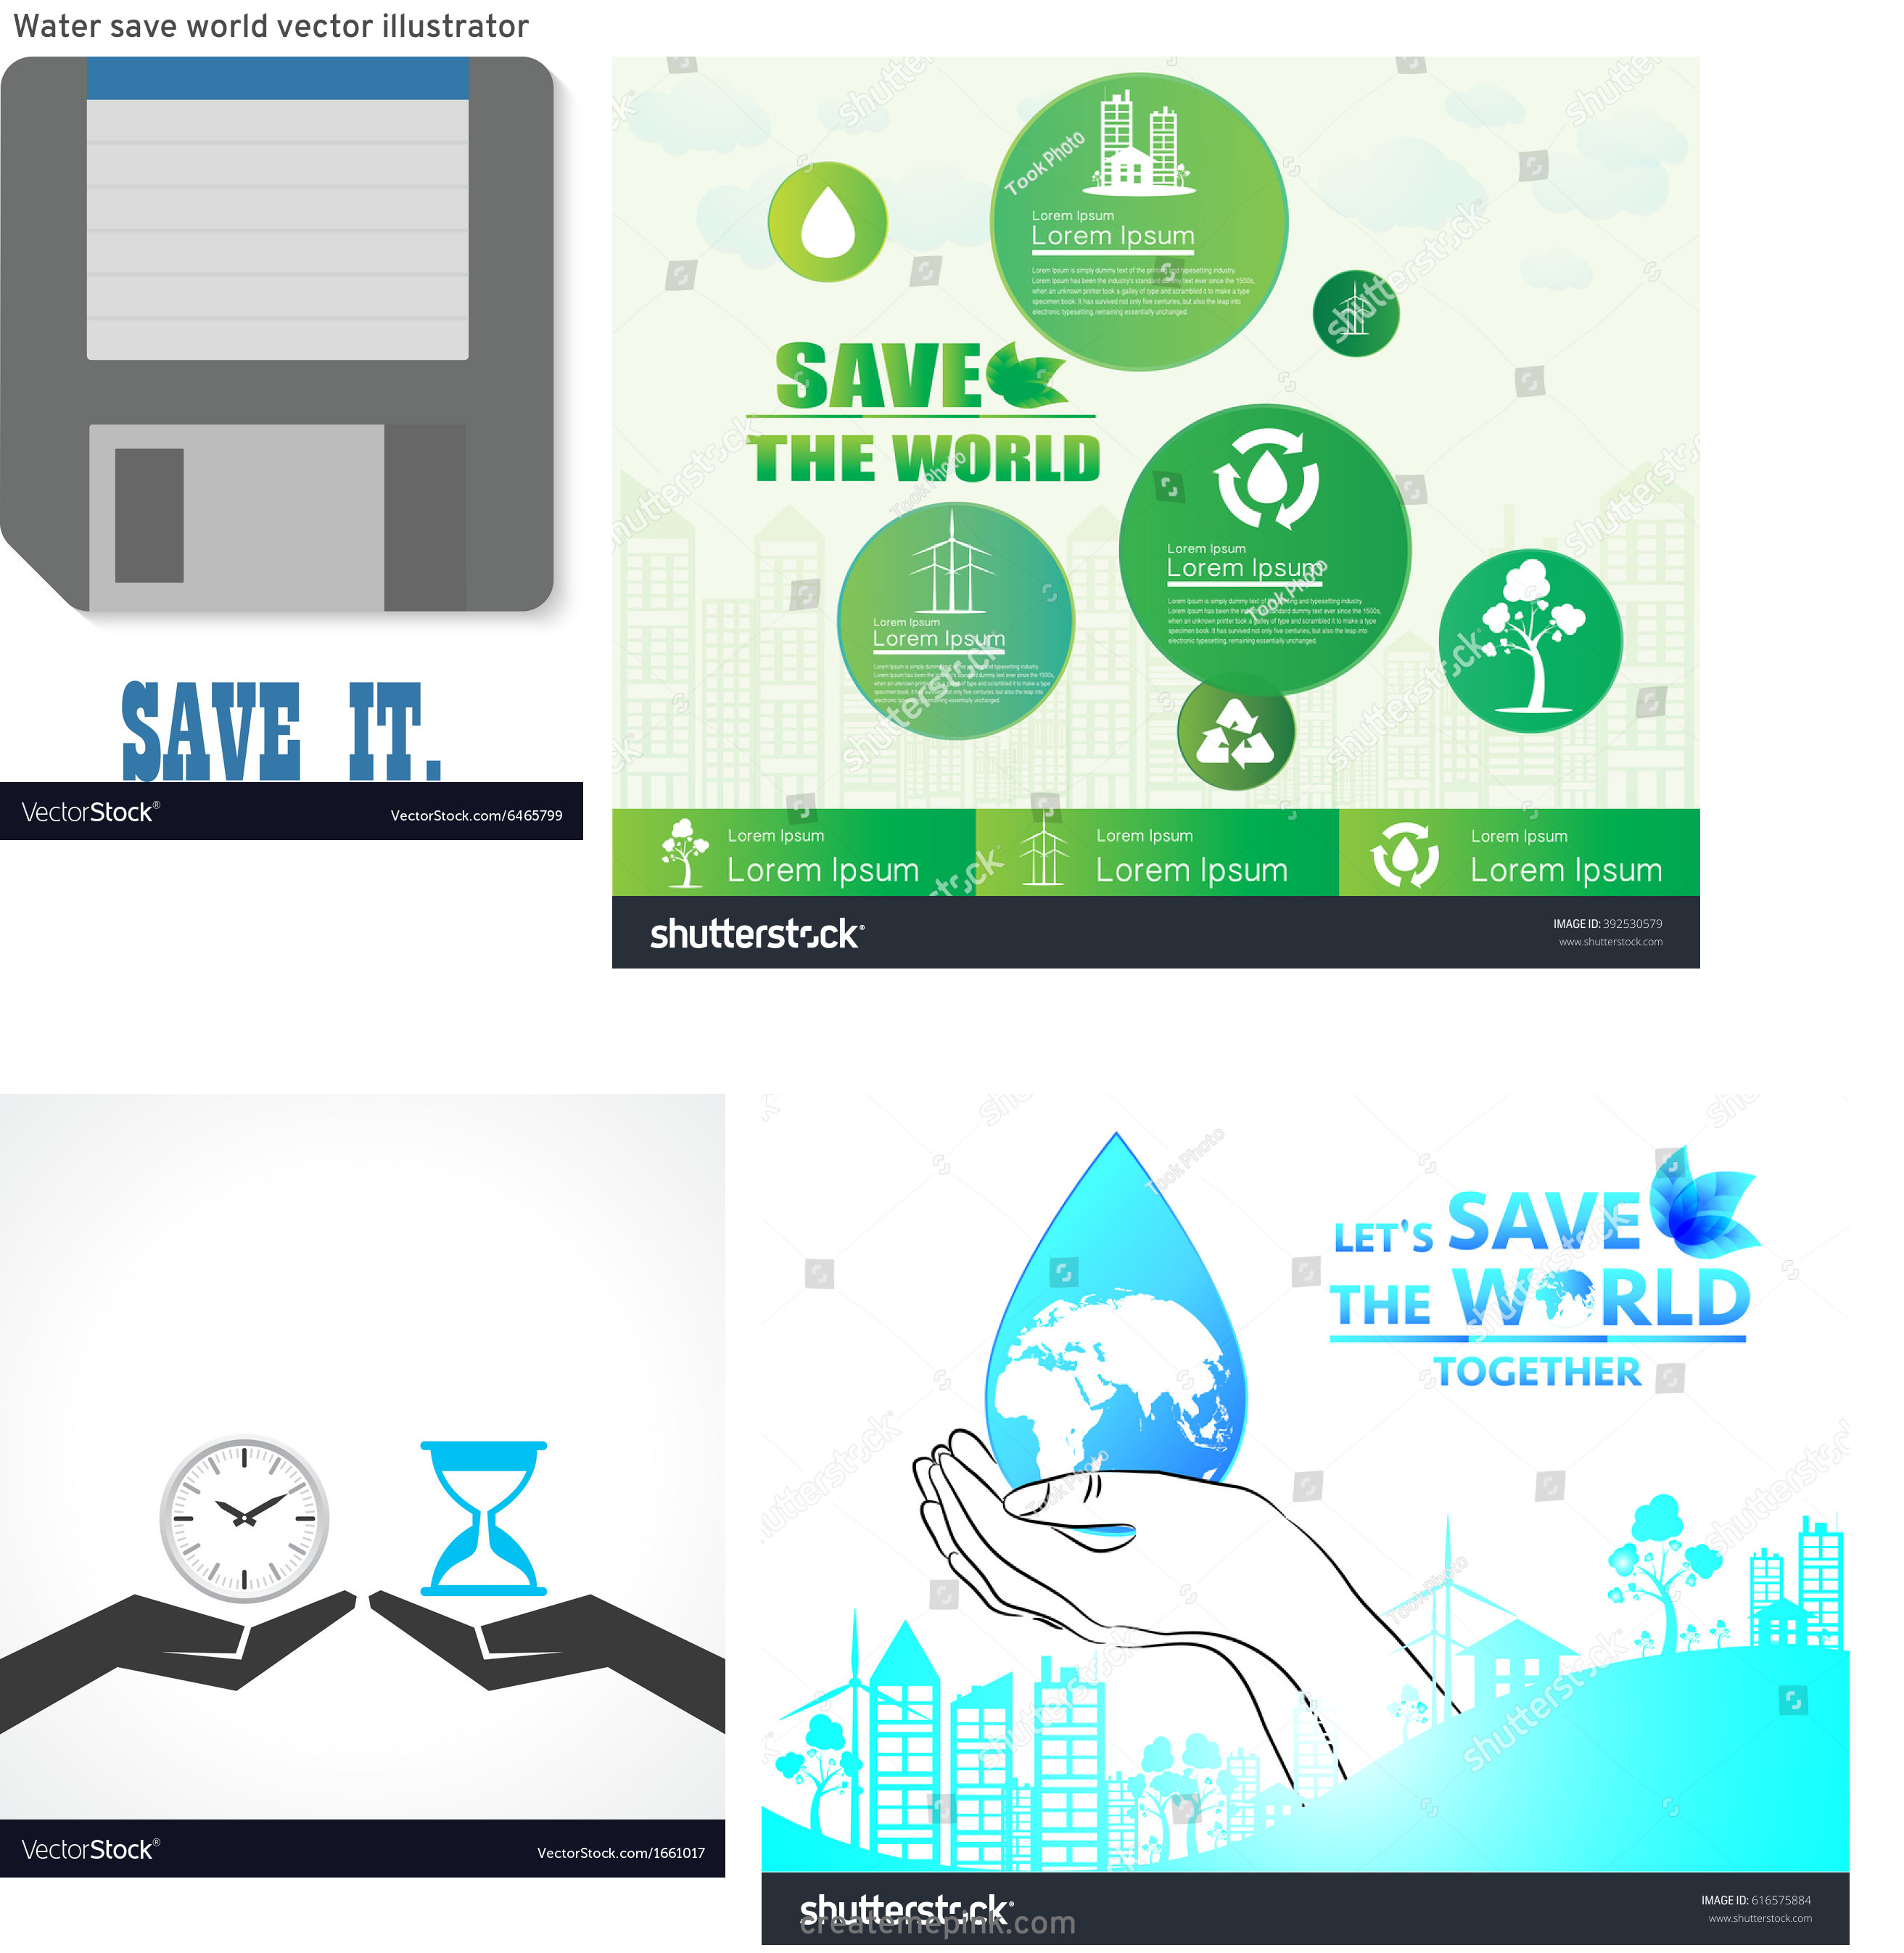 Save As Vector In Illustrator: Water Save World Vector Illustrator